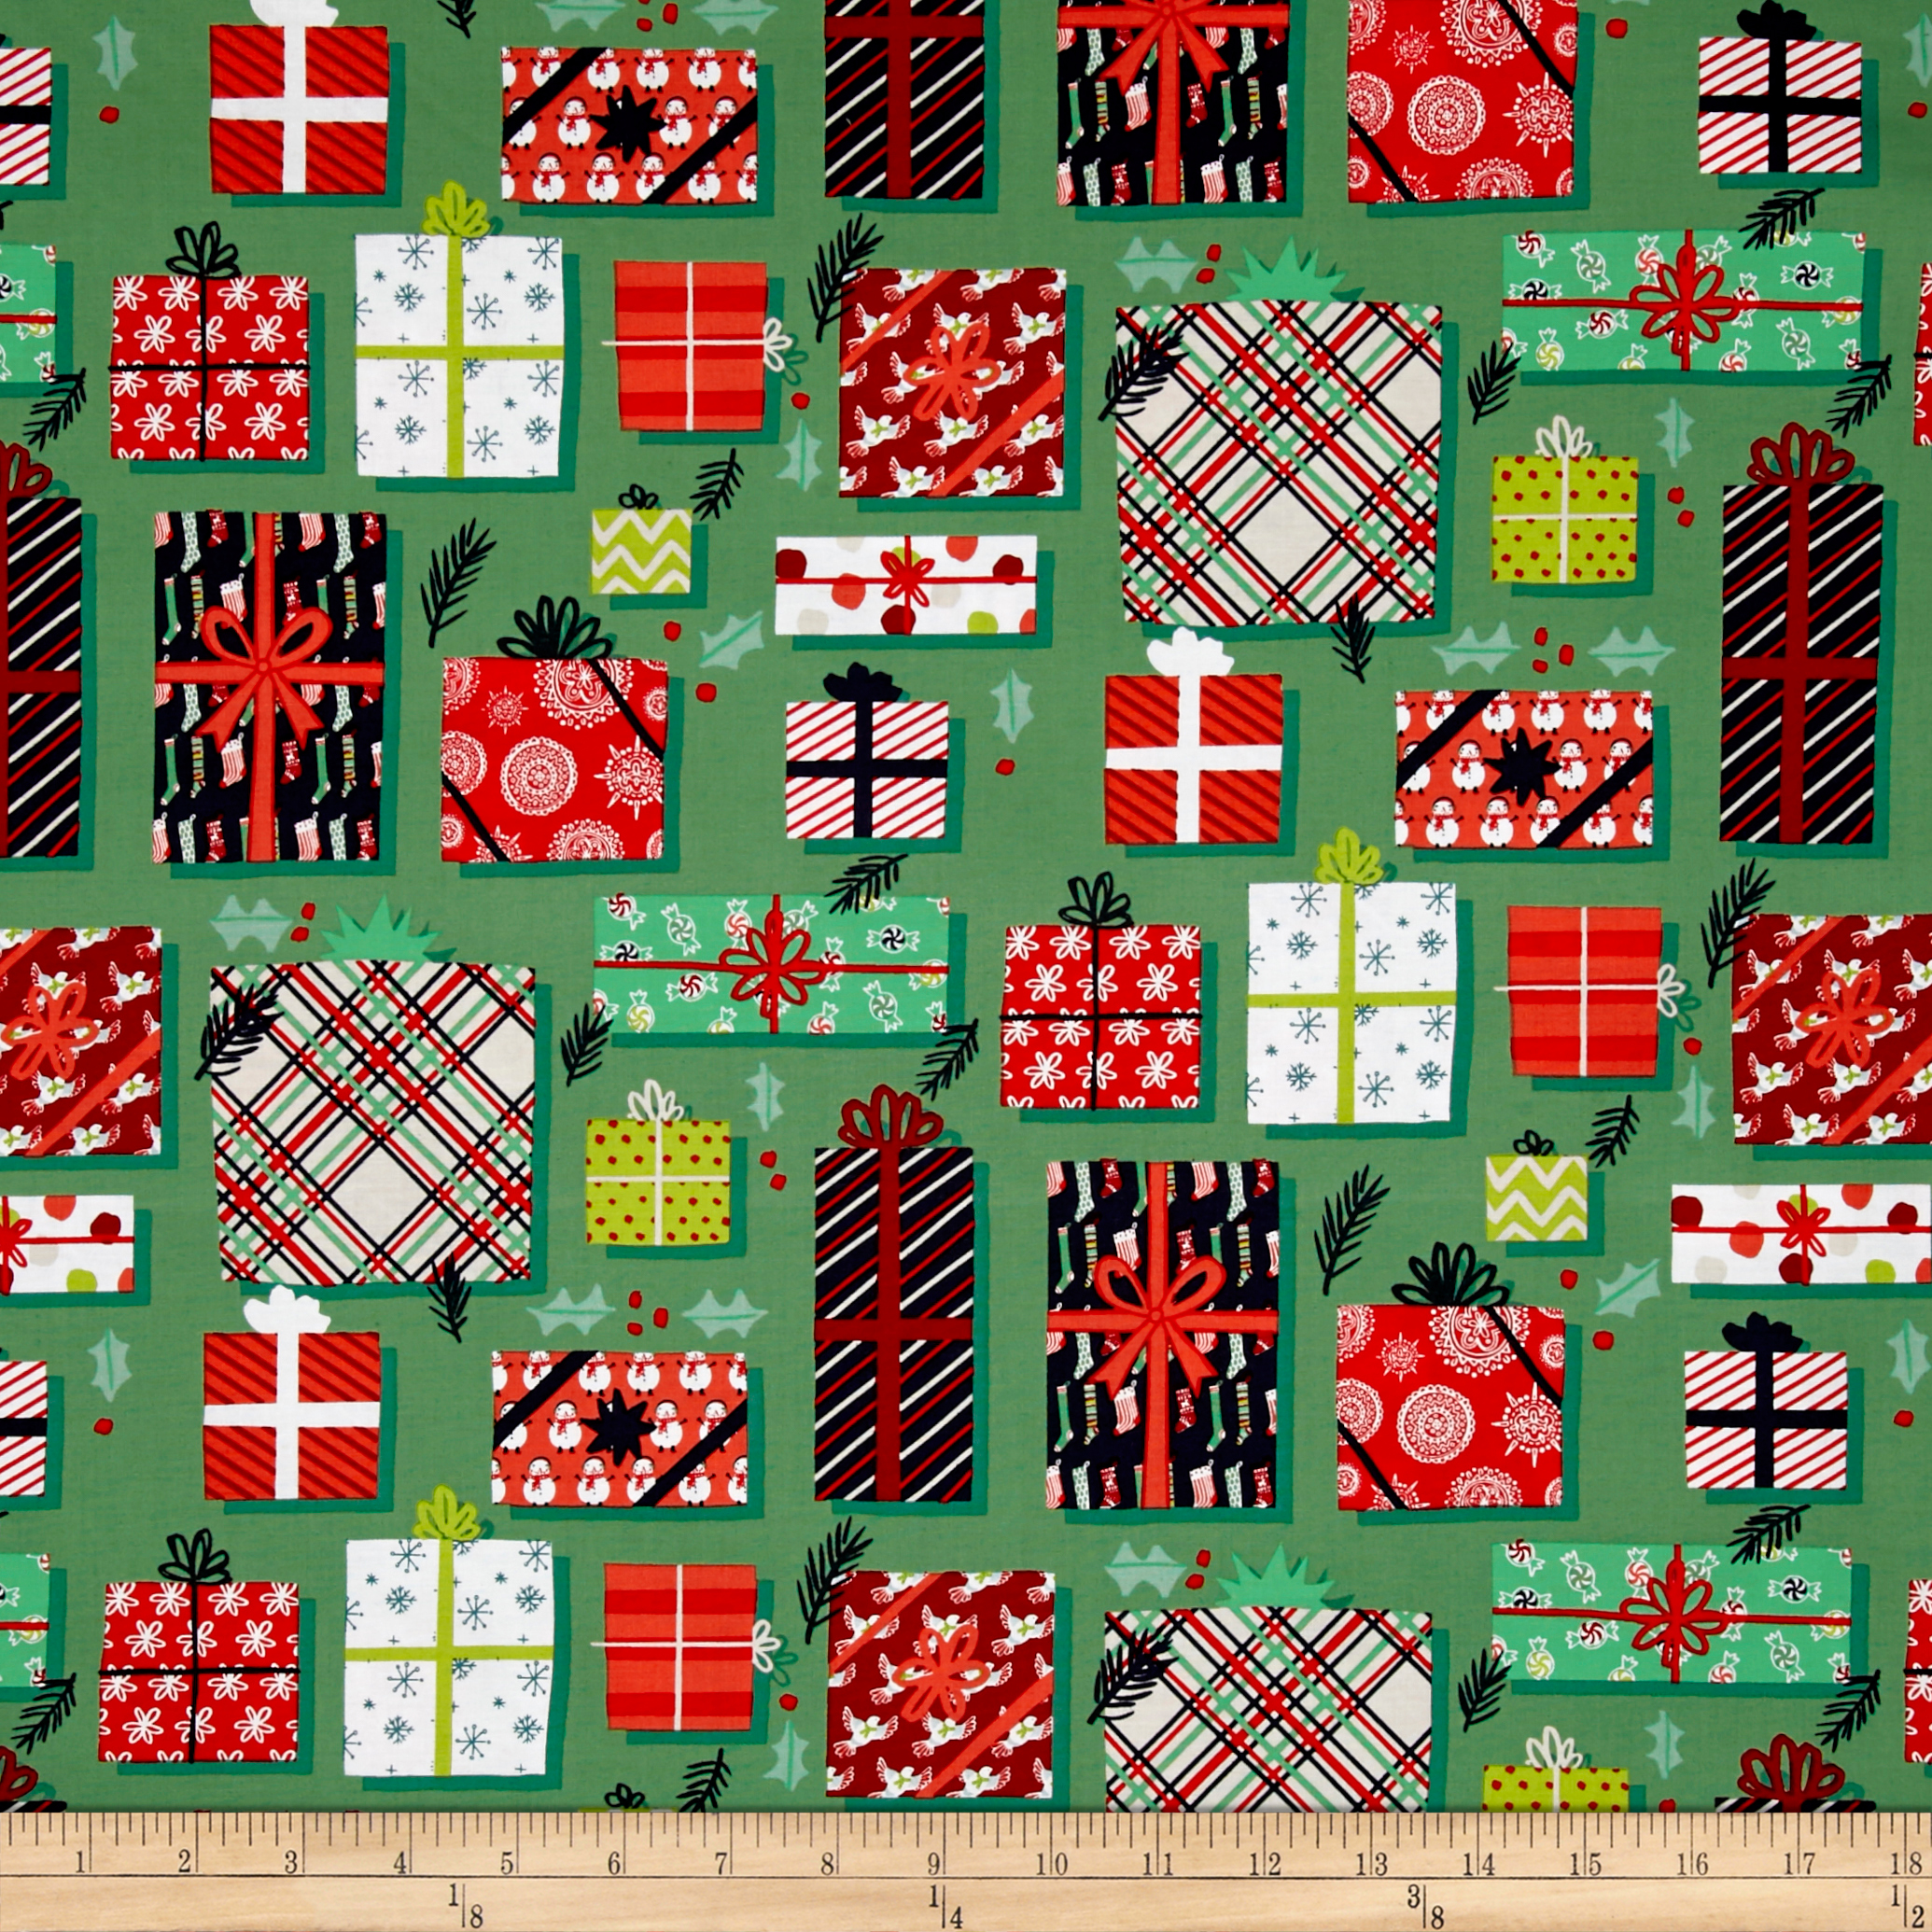 25 Days of Christmas Gifts Green Fabric By The Yard